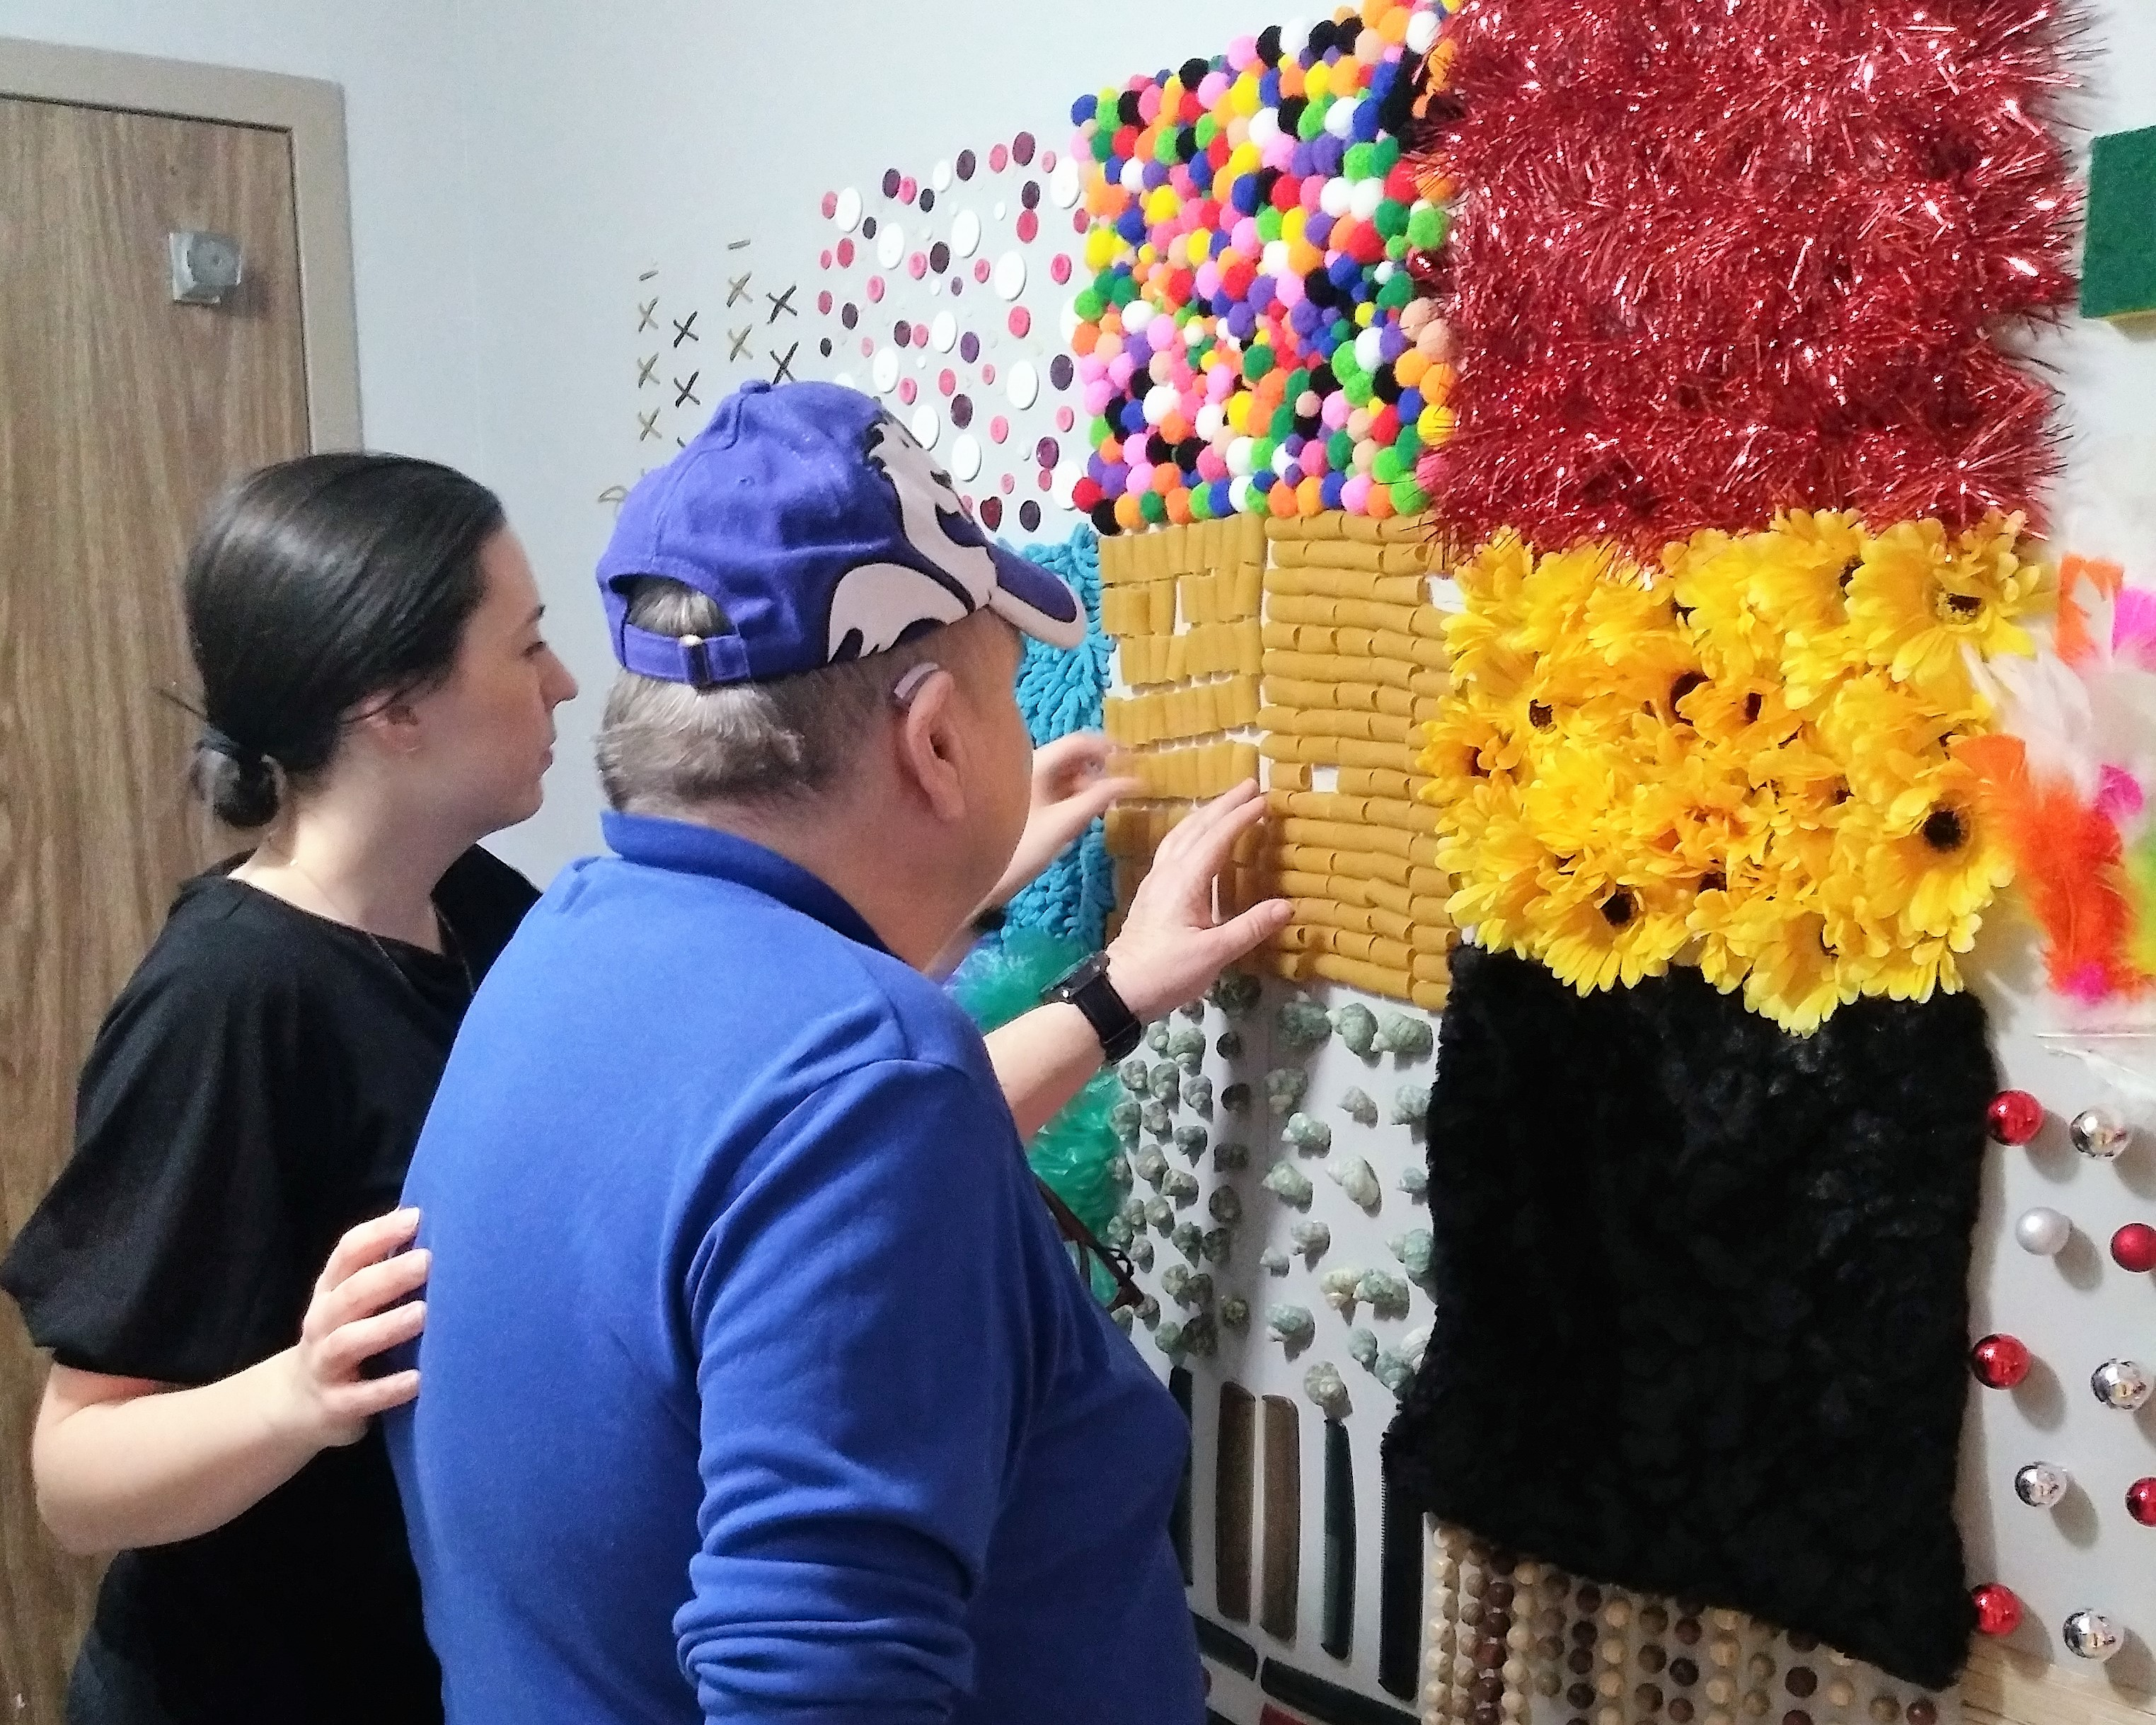 BSO team lead Samantha and resident Lynda take part in a sensory activity, touching raised objects on the wall